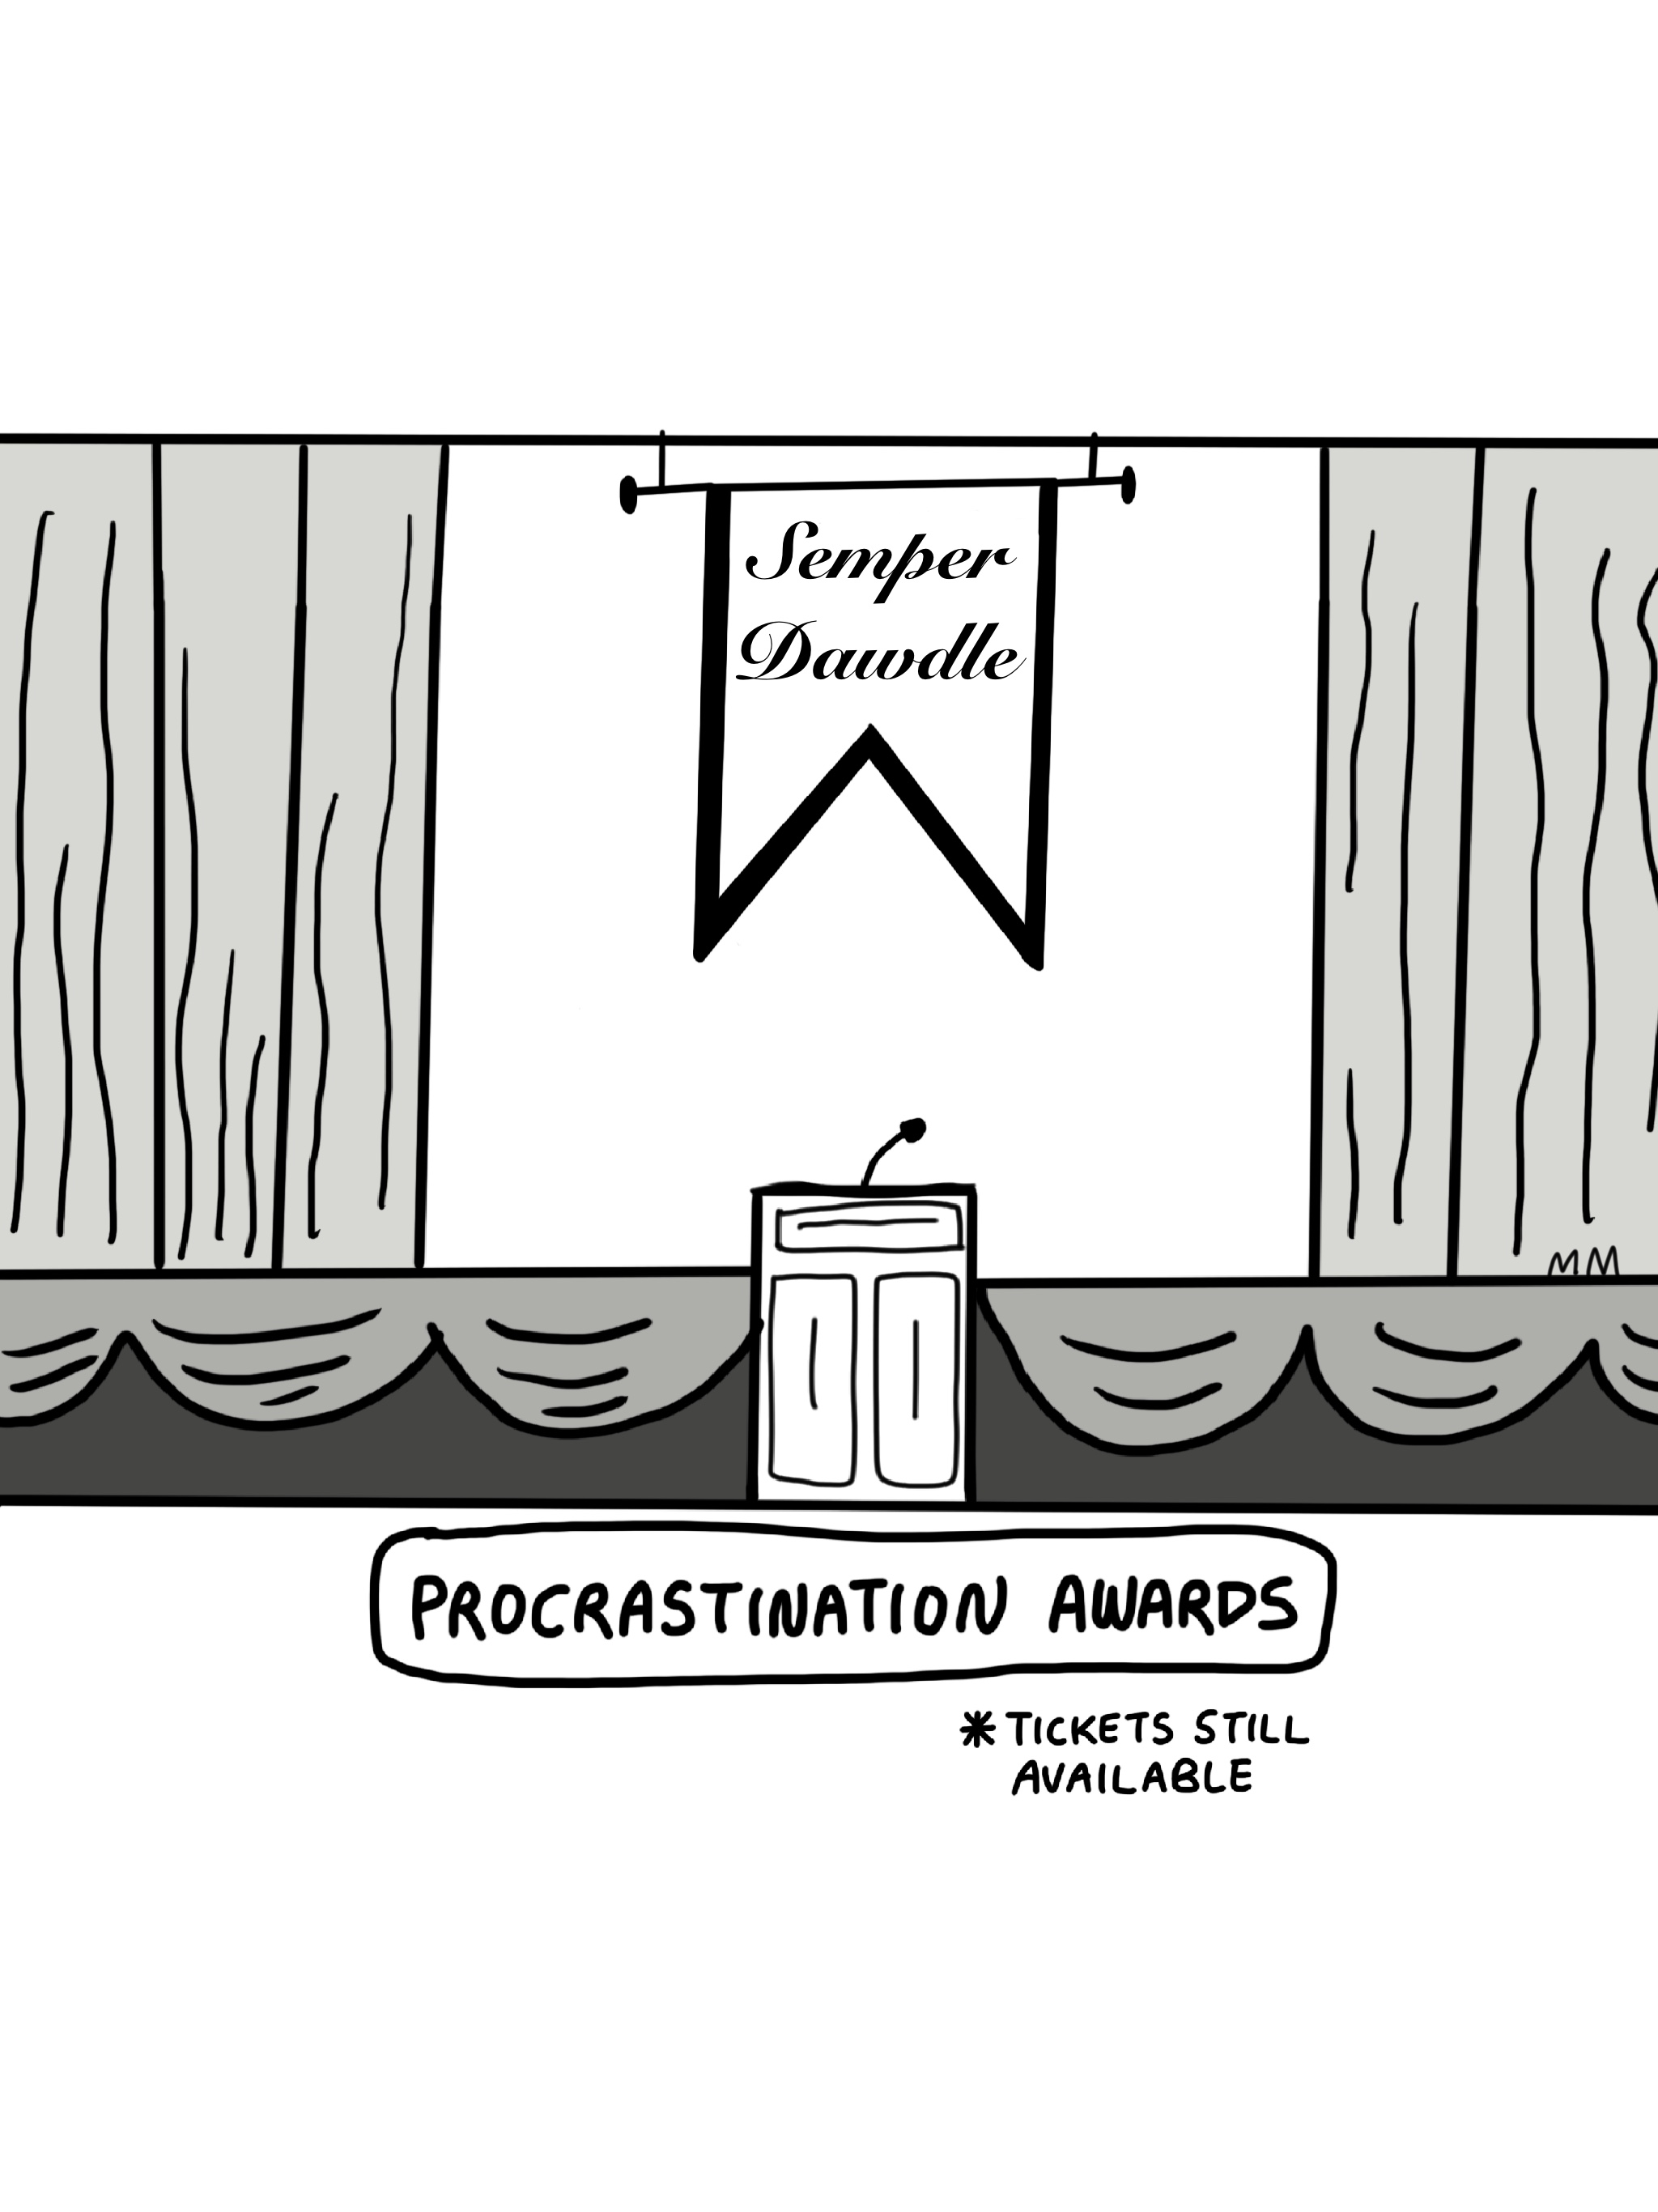 Procrastination Awards